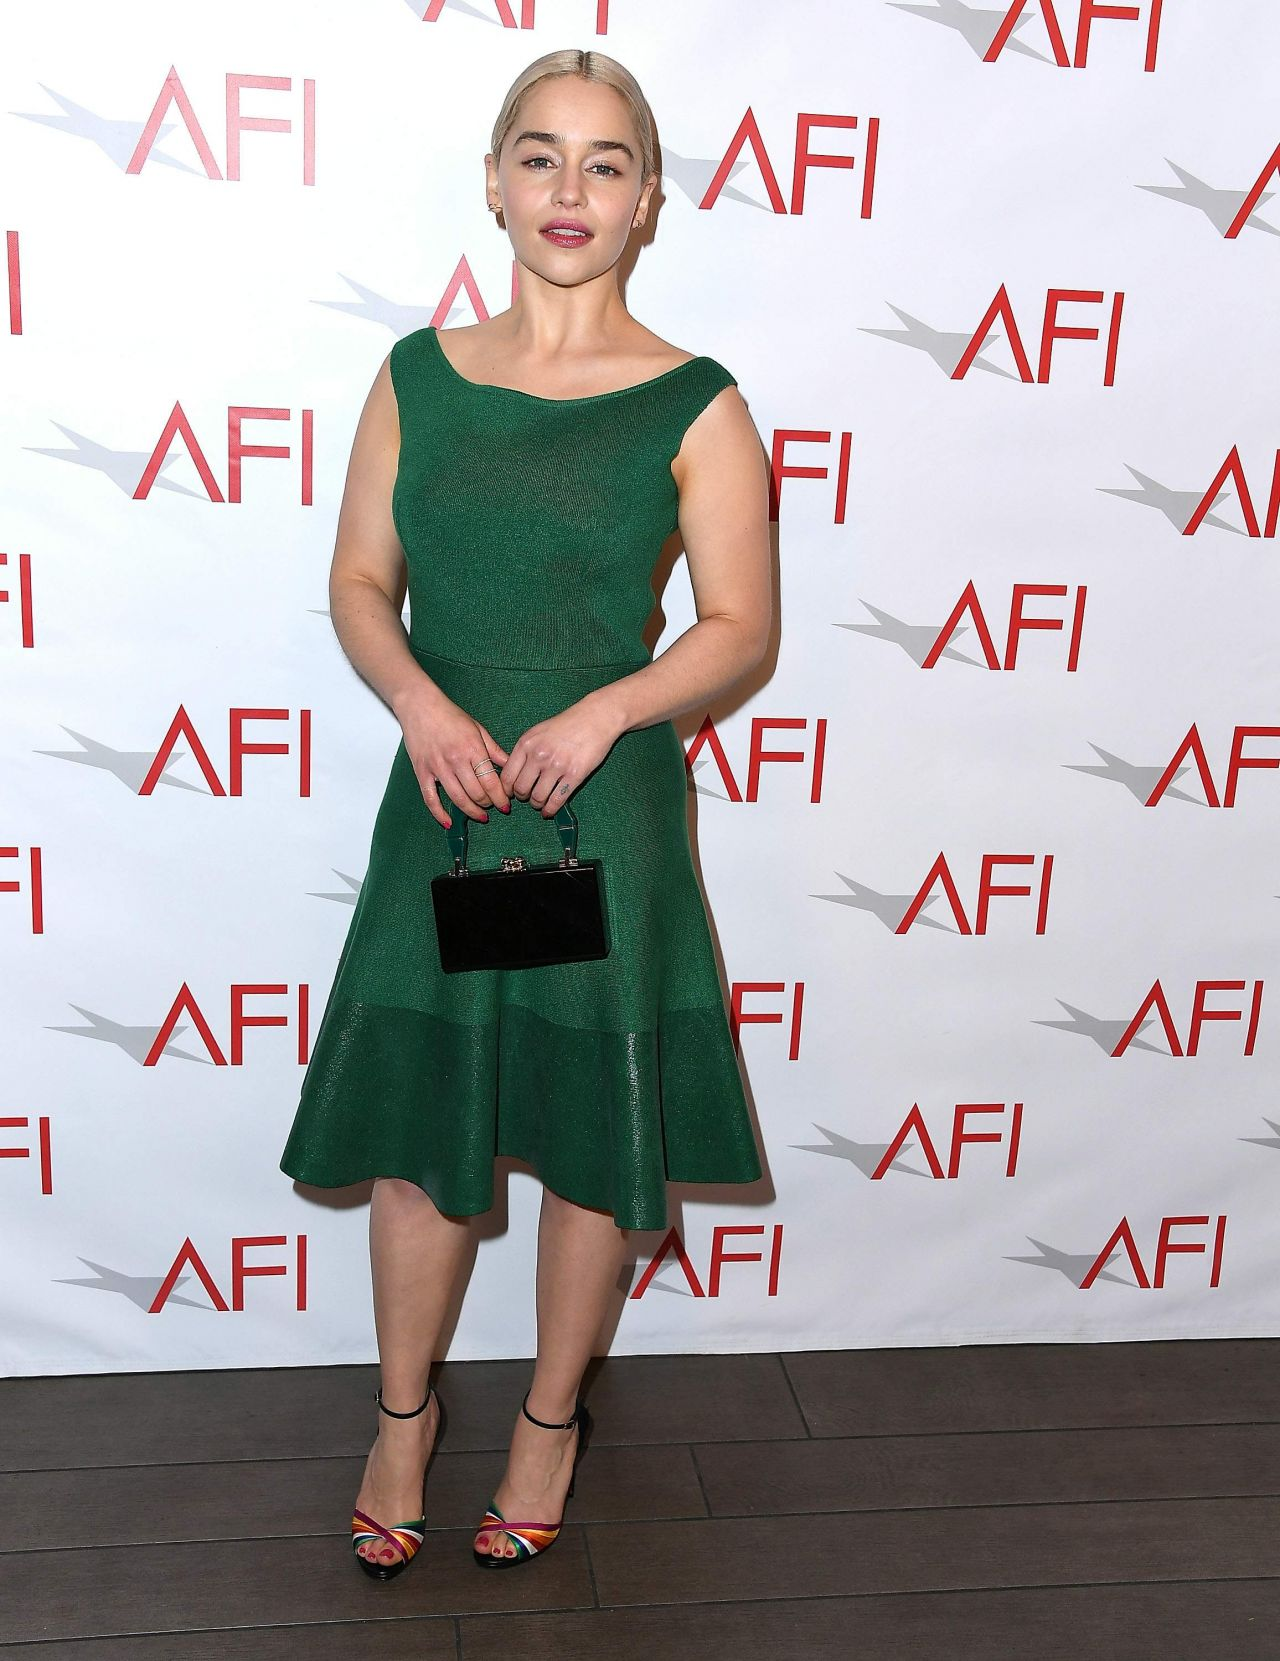 Emilia Clarke Afi Awards 2018 In Los Angeles